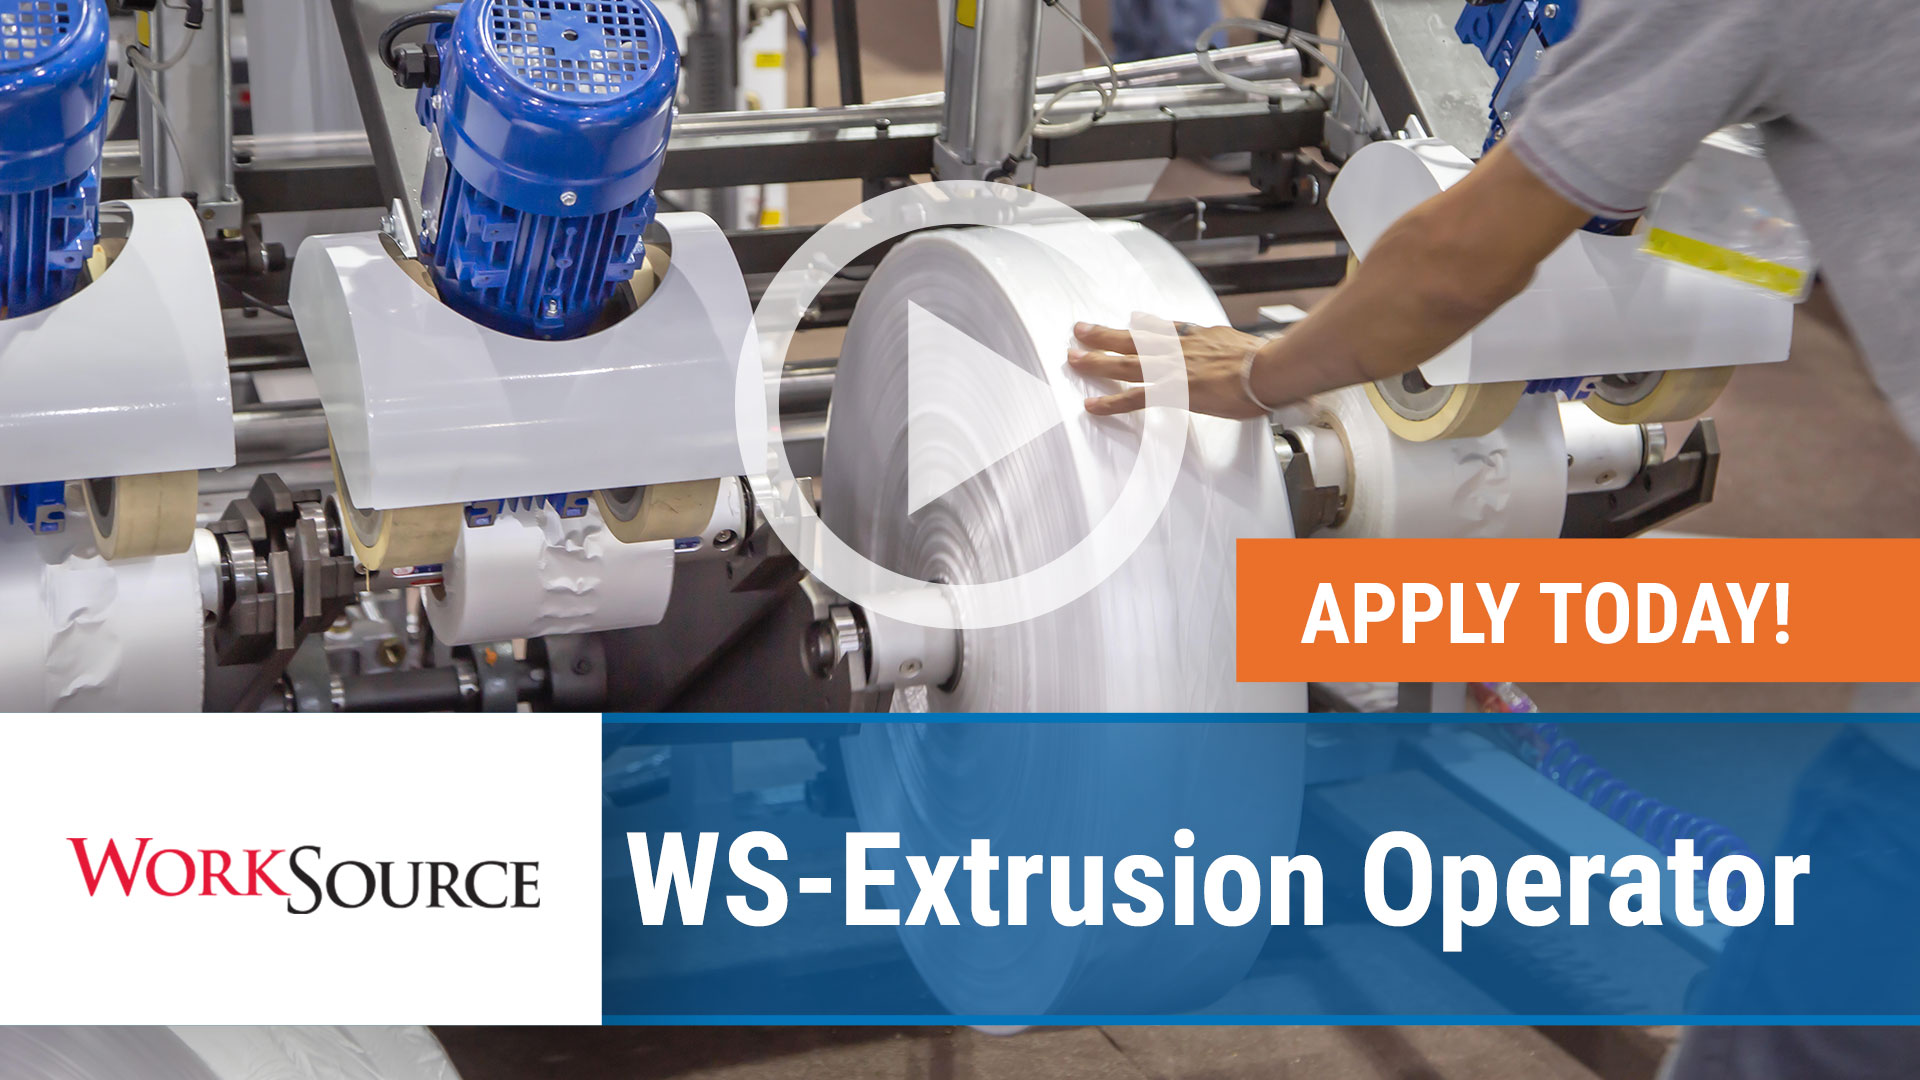 Watch our careers video for available job opening WS Extrusion Operator in Van Buren,Arkansas. USA